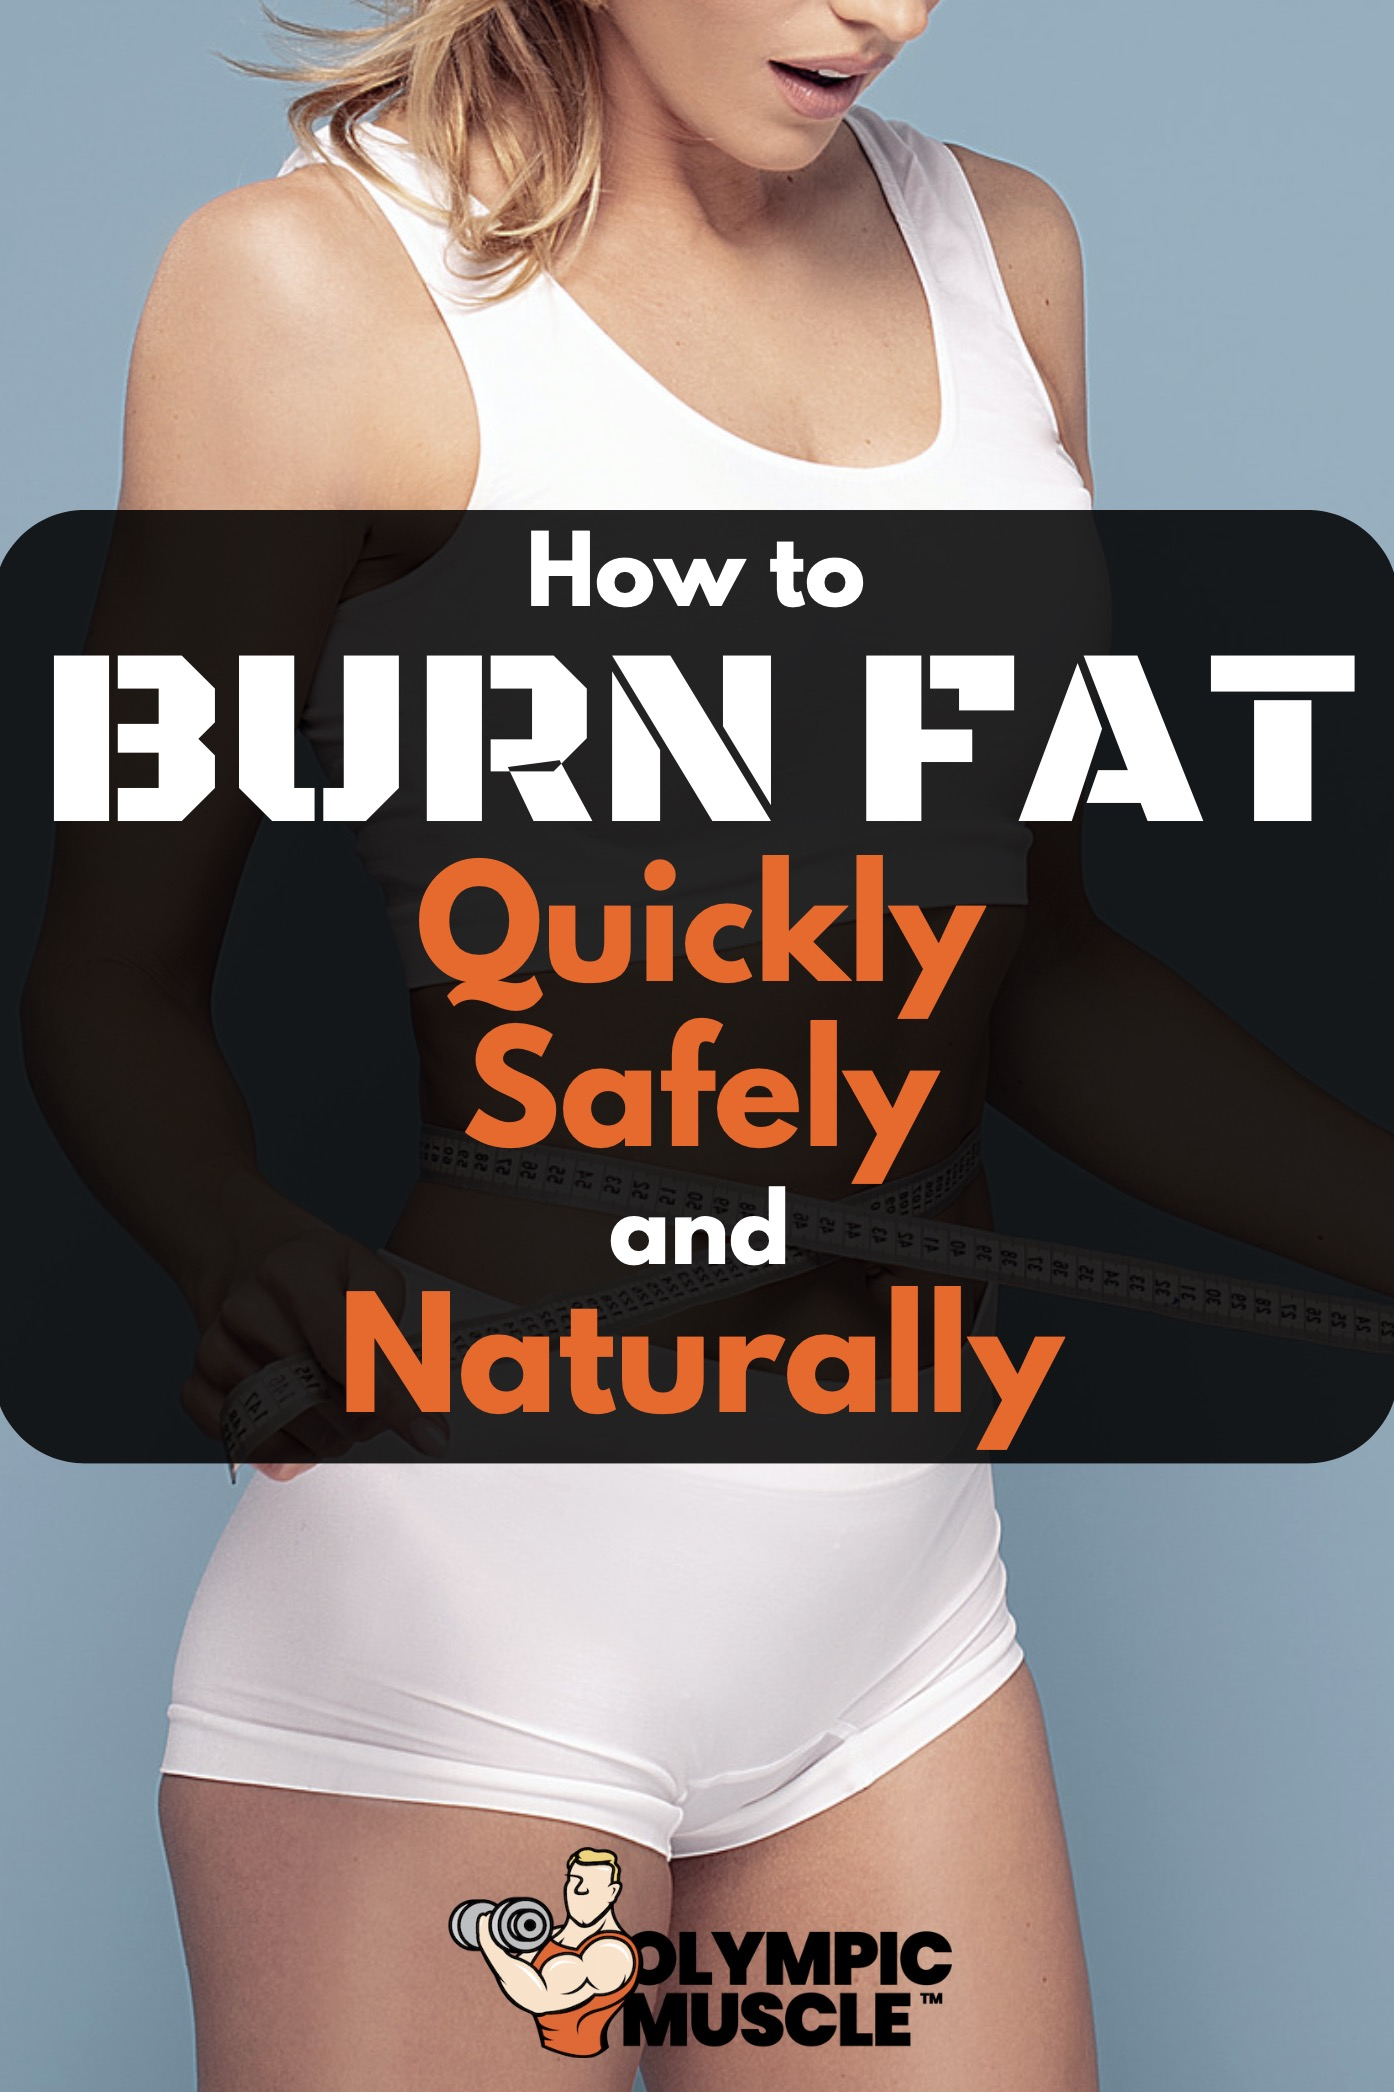 How to Burn Fat Naturally: Tips, Tricks, and Workouts